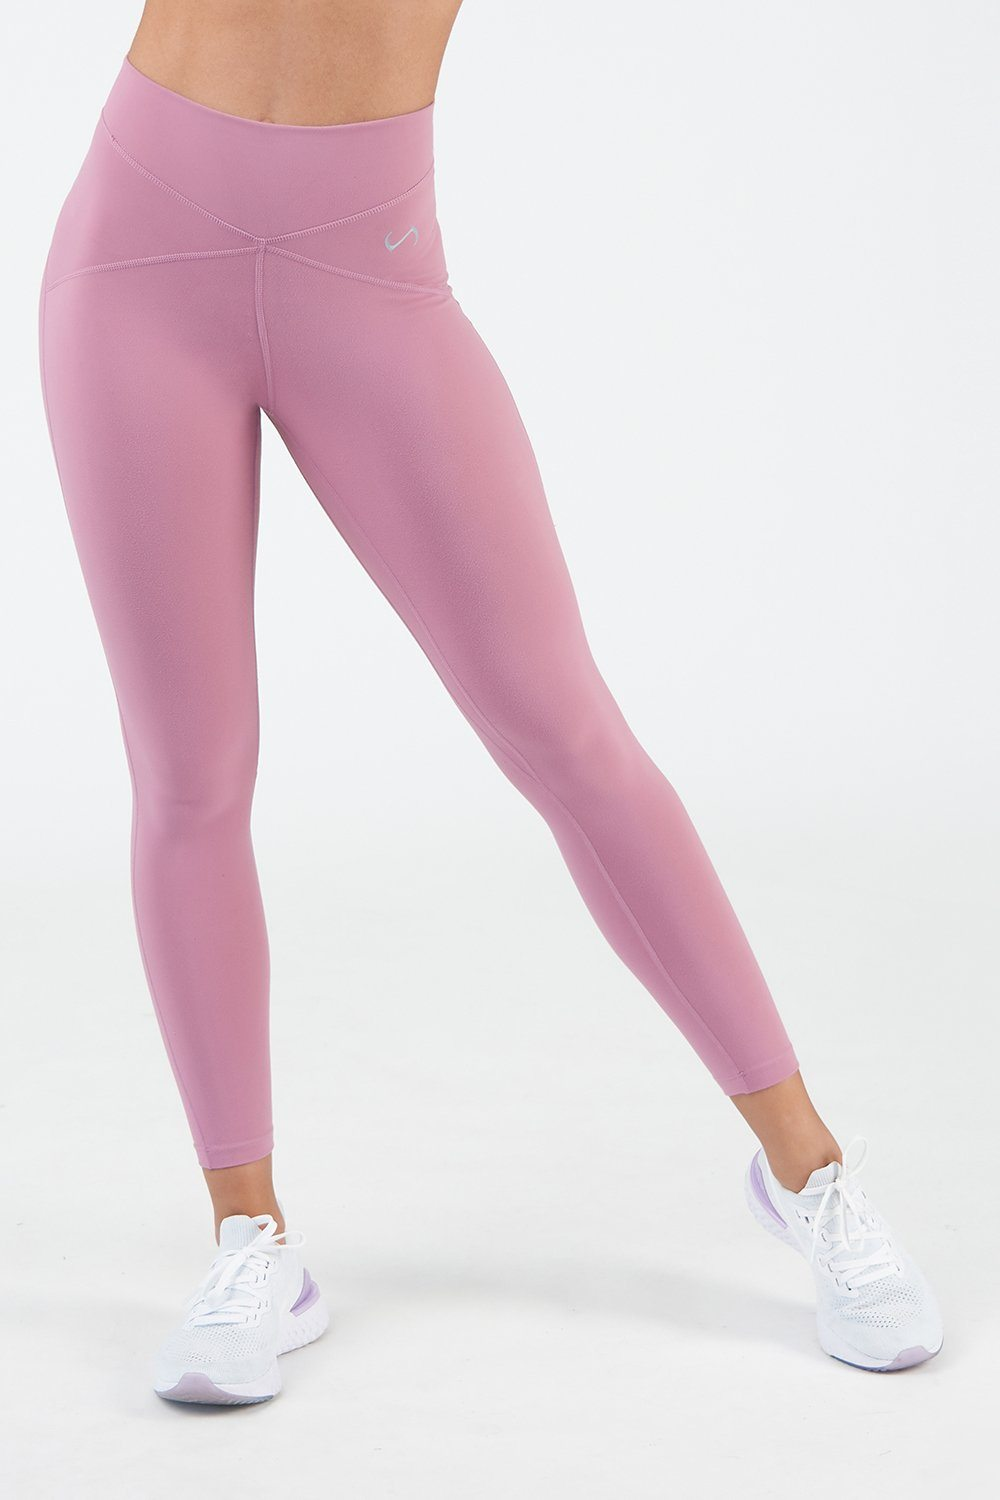 TLF Revive High-Waisted Workout Leggings - Leggings - TLF Apparel | Take Life Further